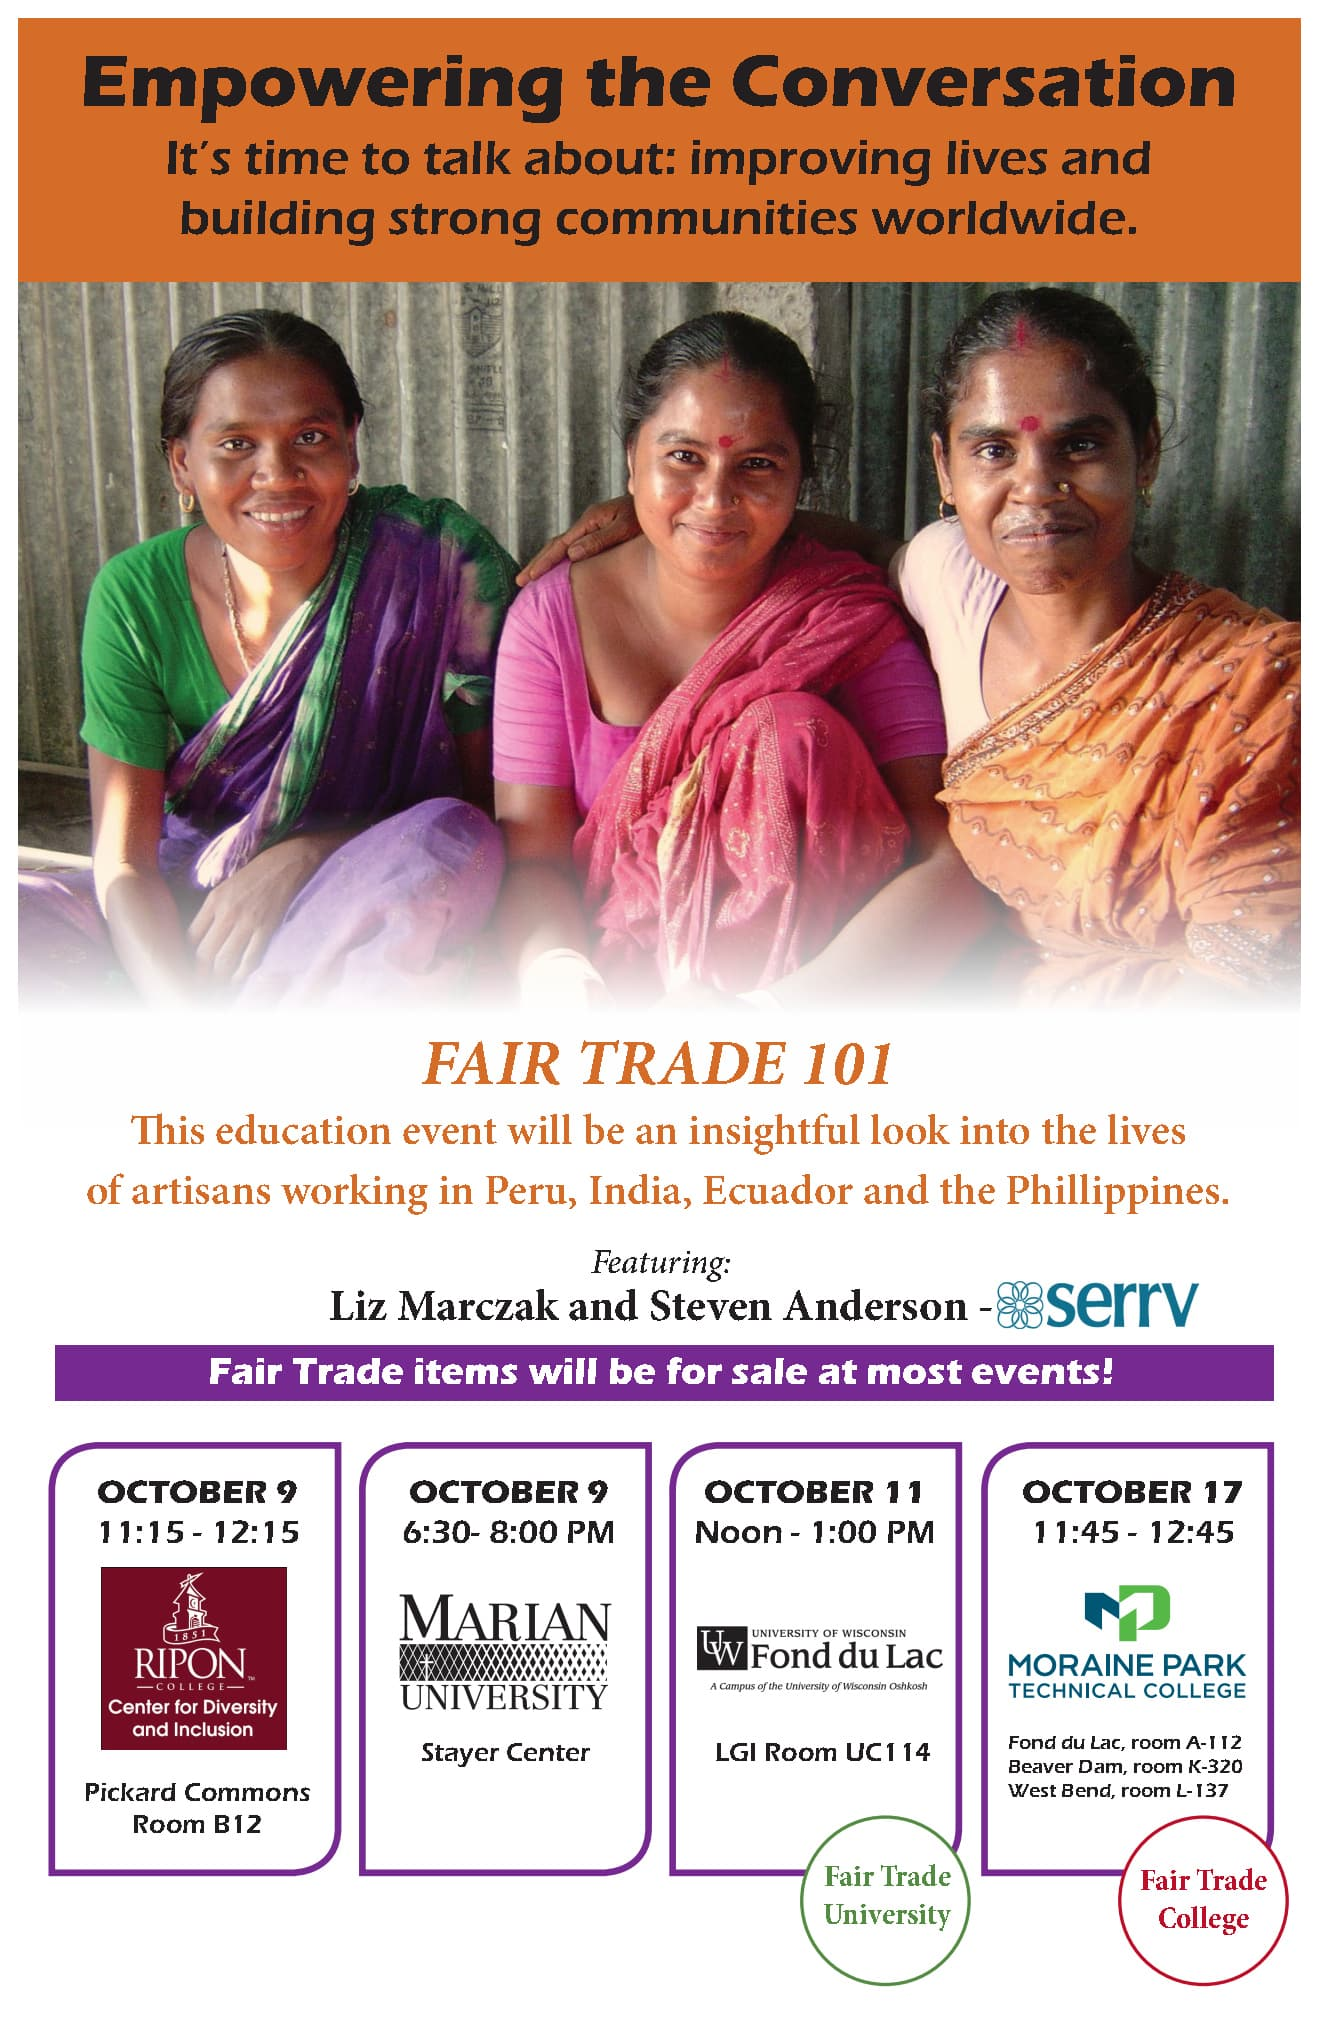 Fair Trade College Poster